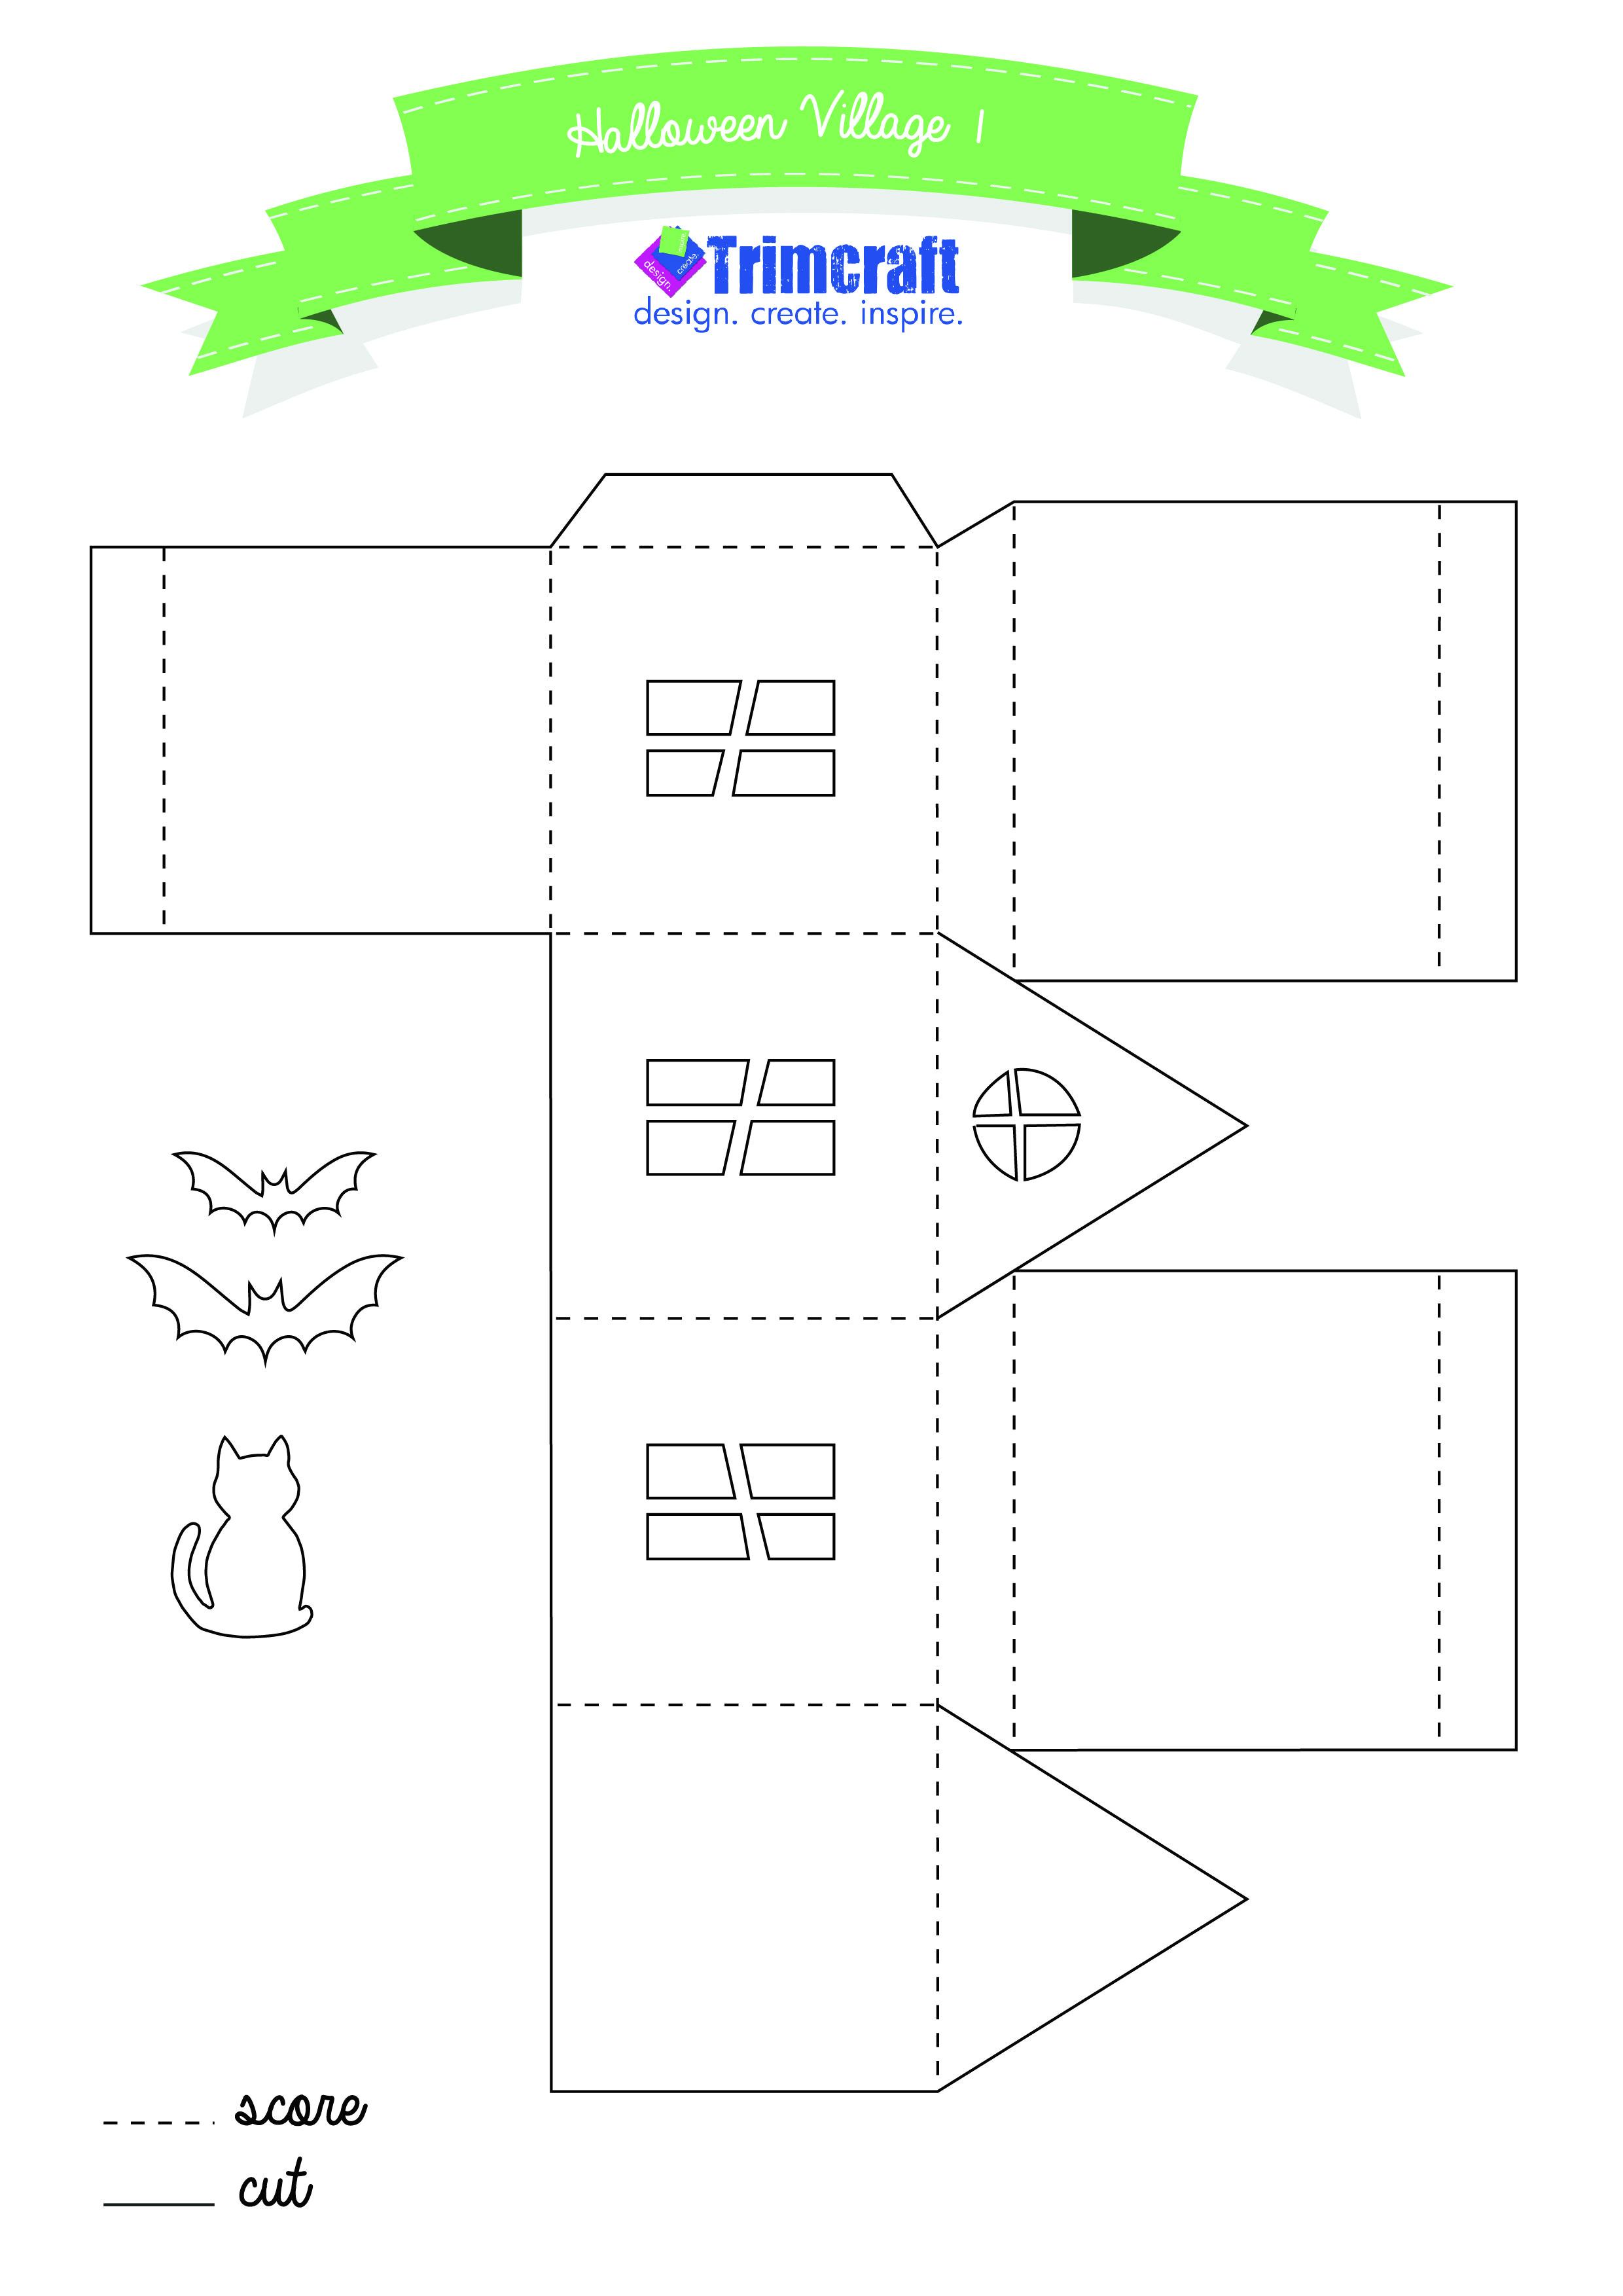 3d haunted halloween houses tutorial and free printable template http www trimcraft